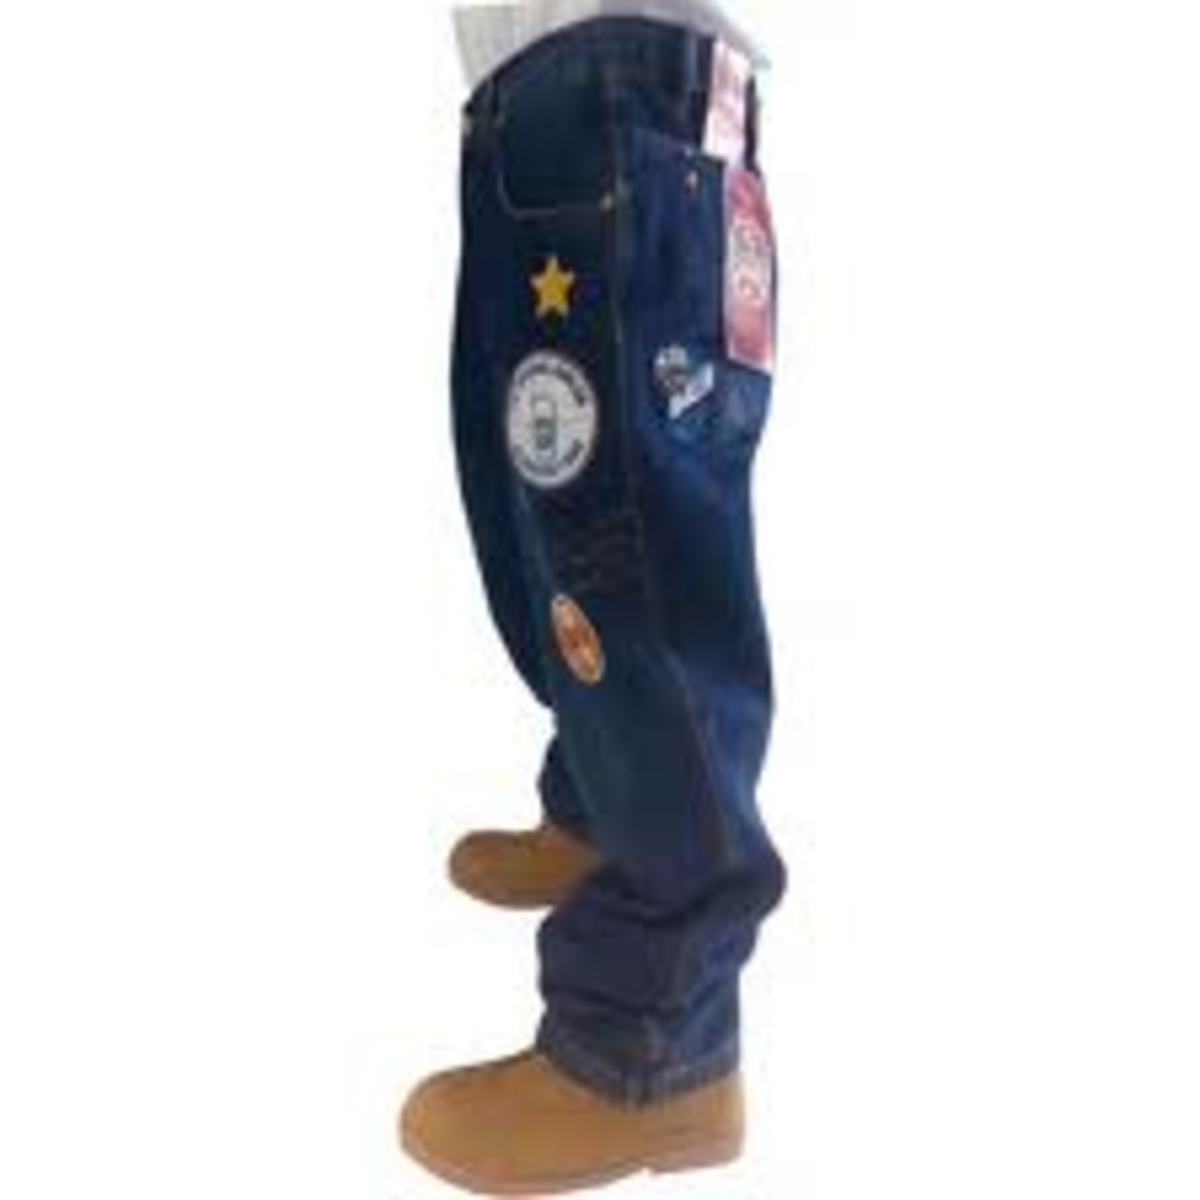 FUBU Jeans - Popular Jeans of the 80s